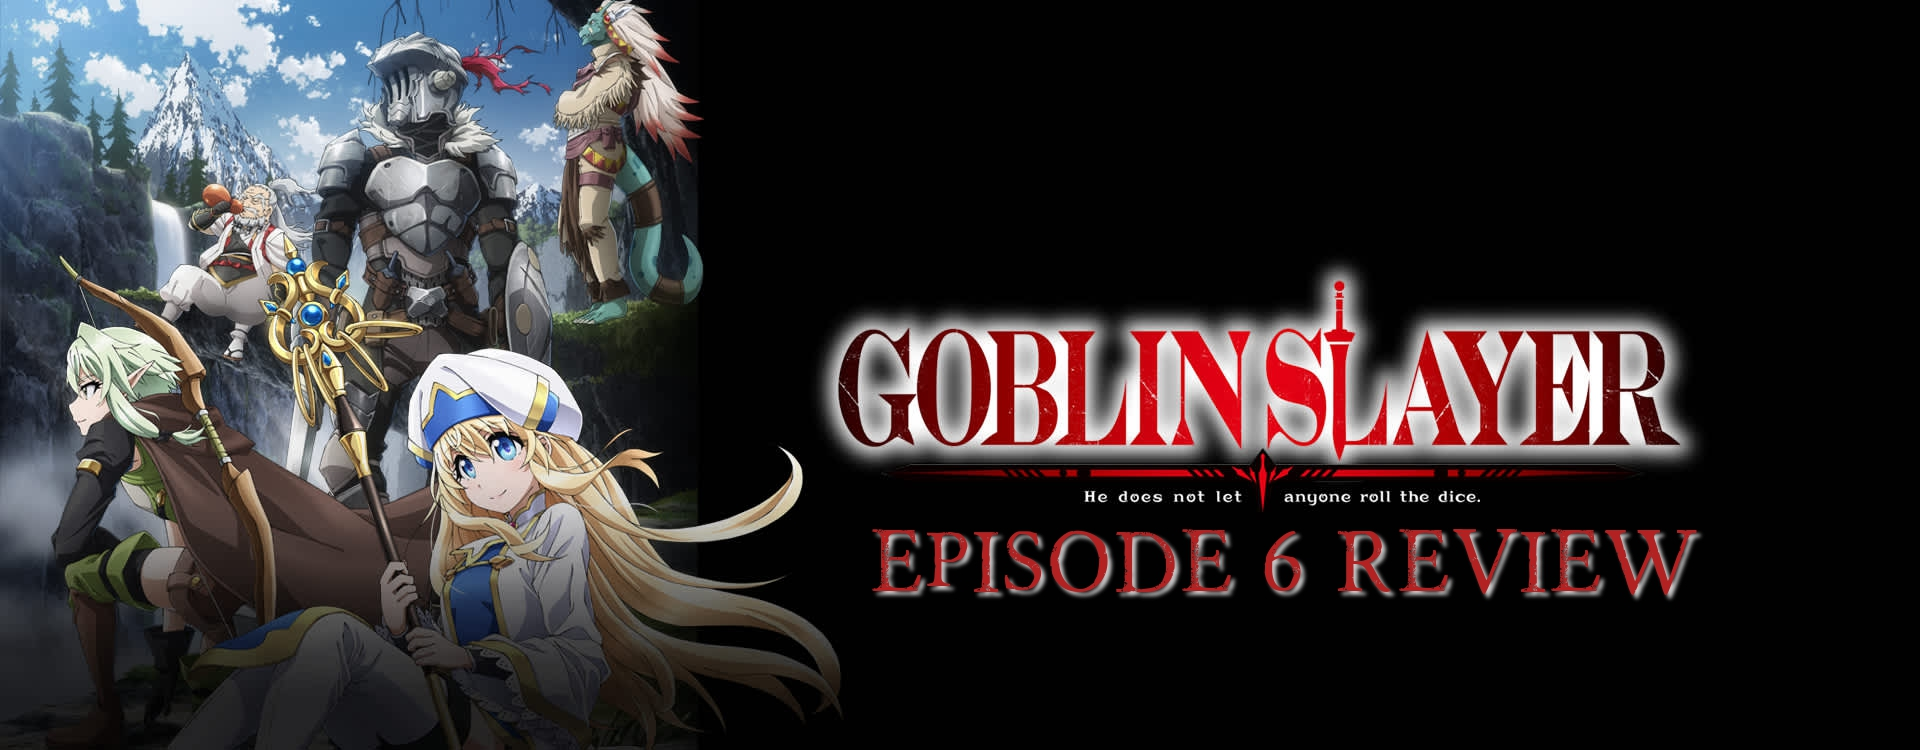 Master Of Side Quests – 'Goblin Slayer' Episode 6 Review